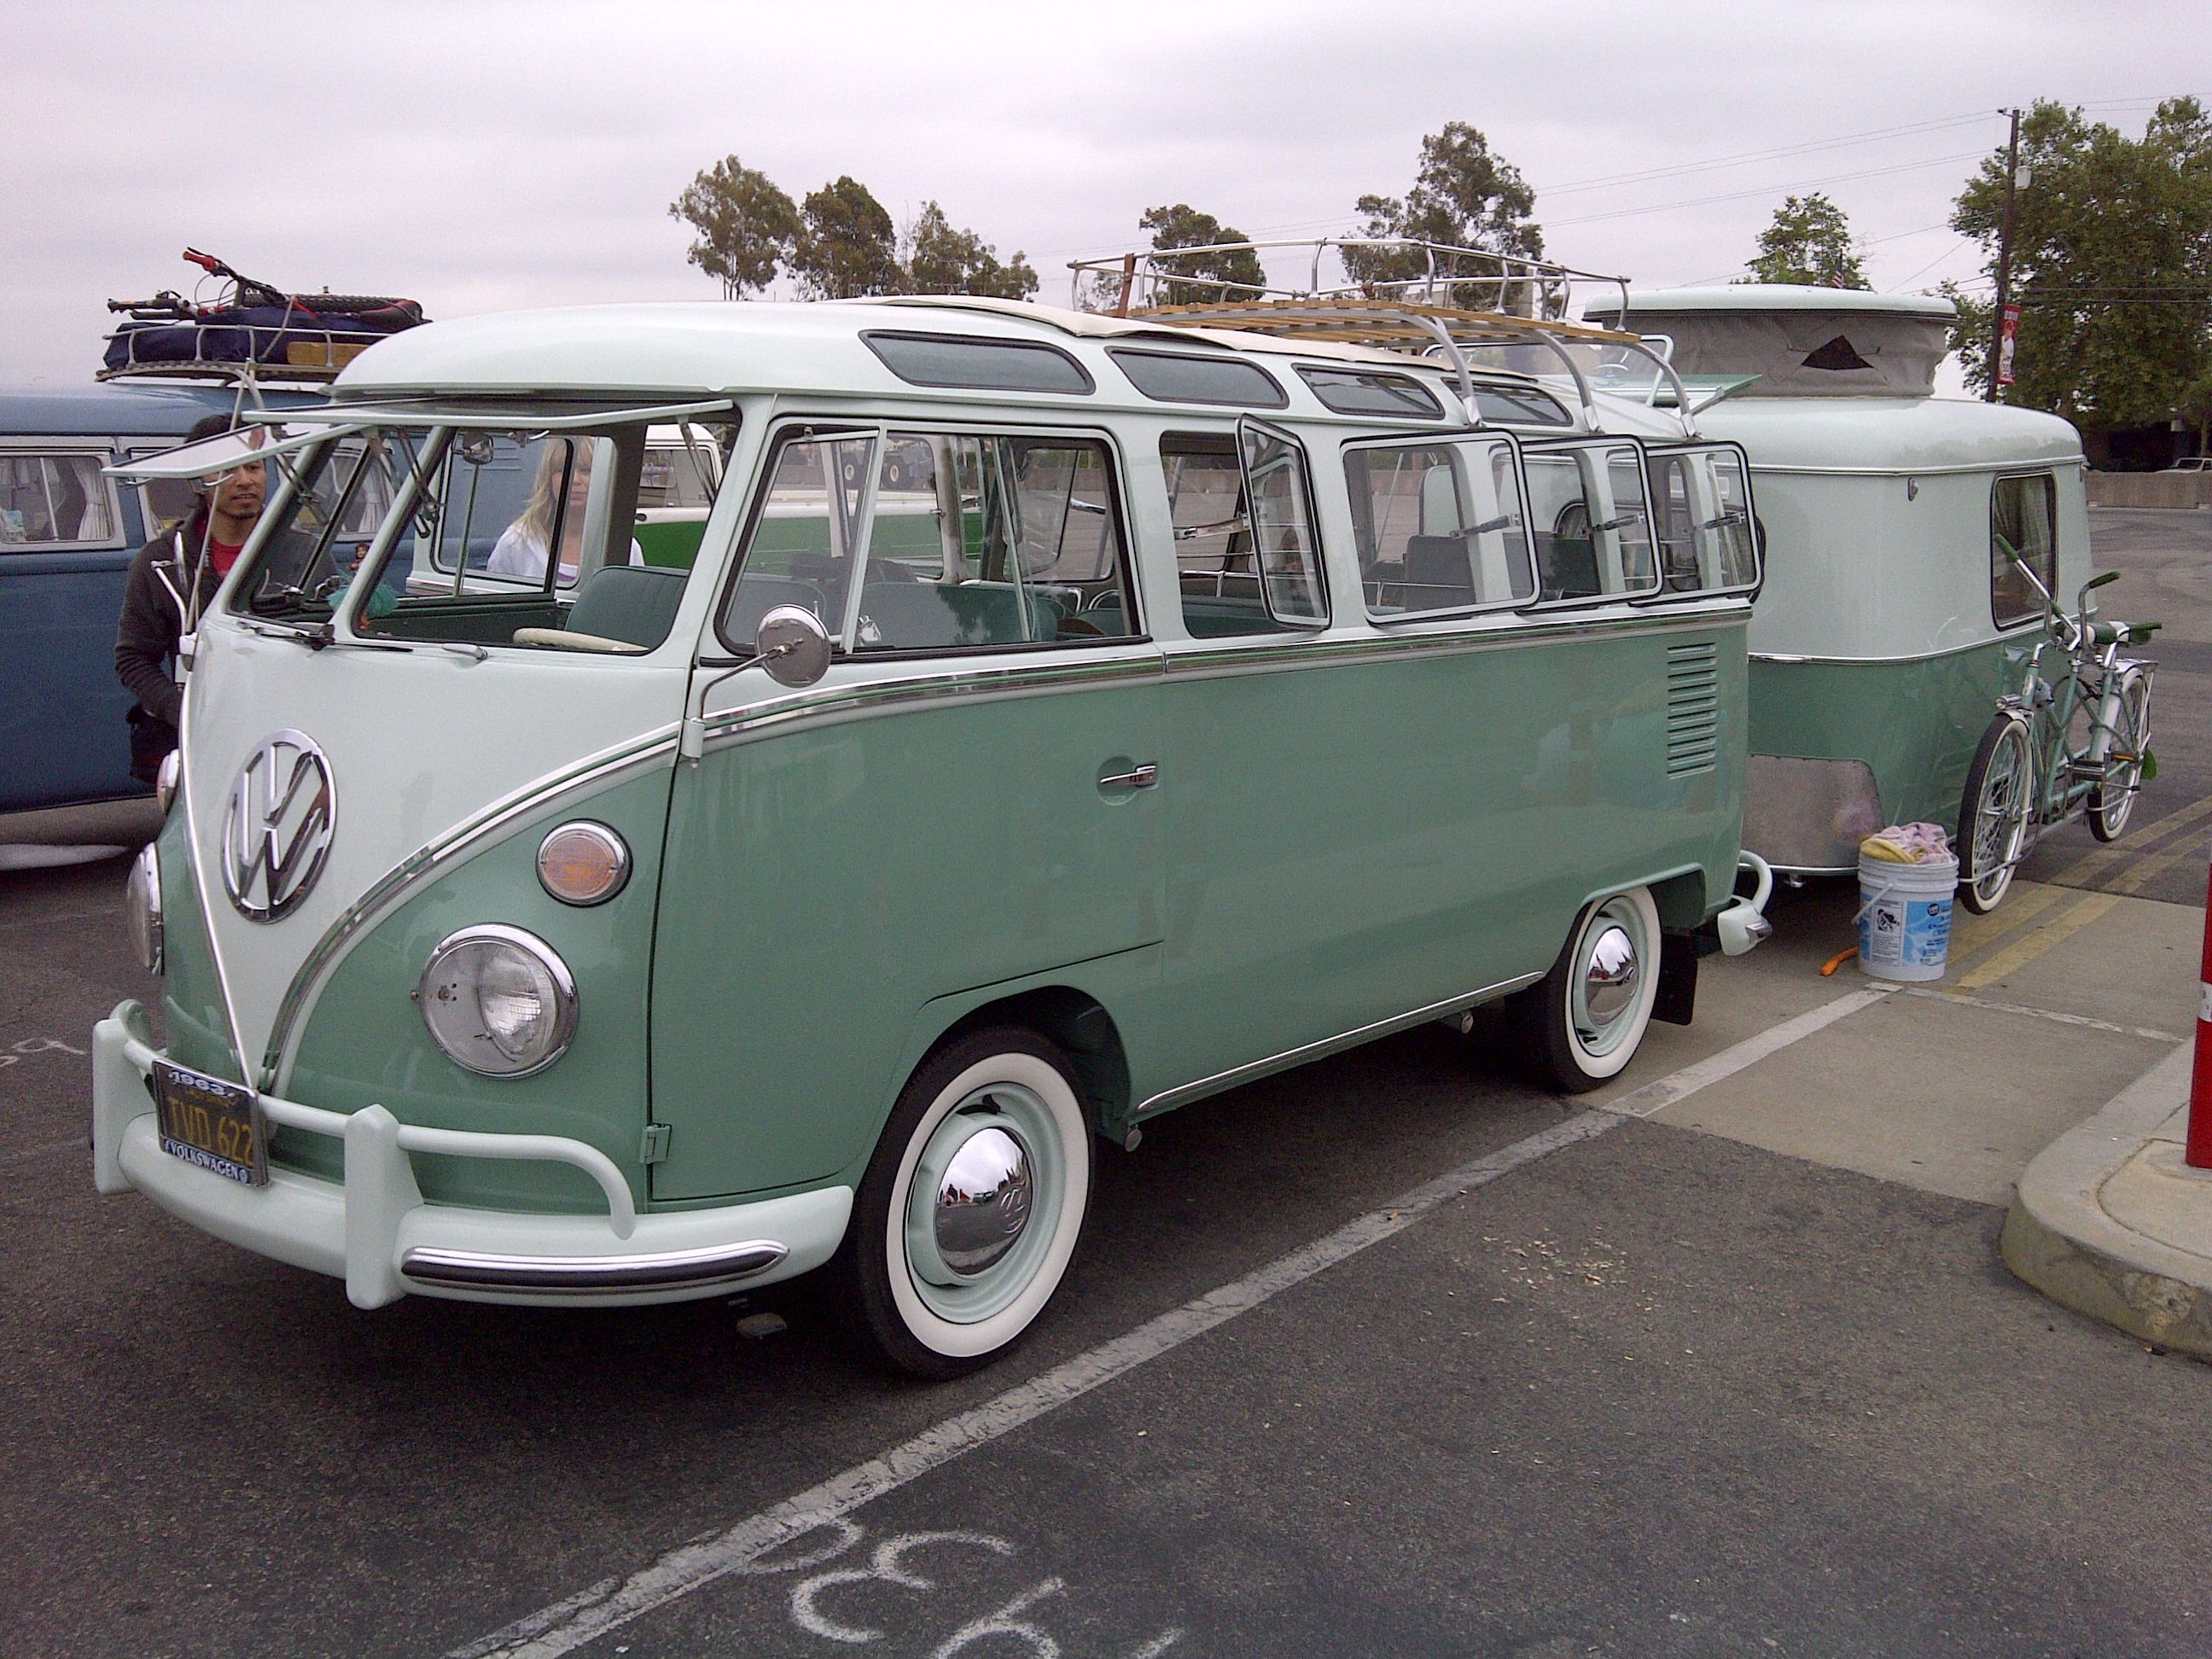 Mint Condition 23 Window Vw Bus With Safari Windows Rag Top And Matching Camper Trailer Volkswagen Bus Vw Bus Vintage Vw